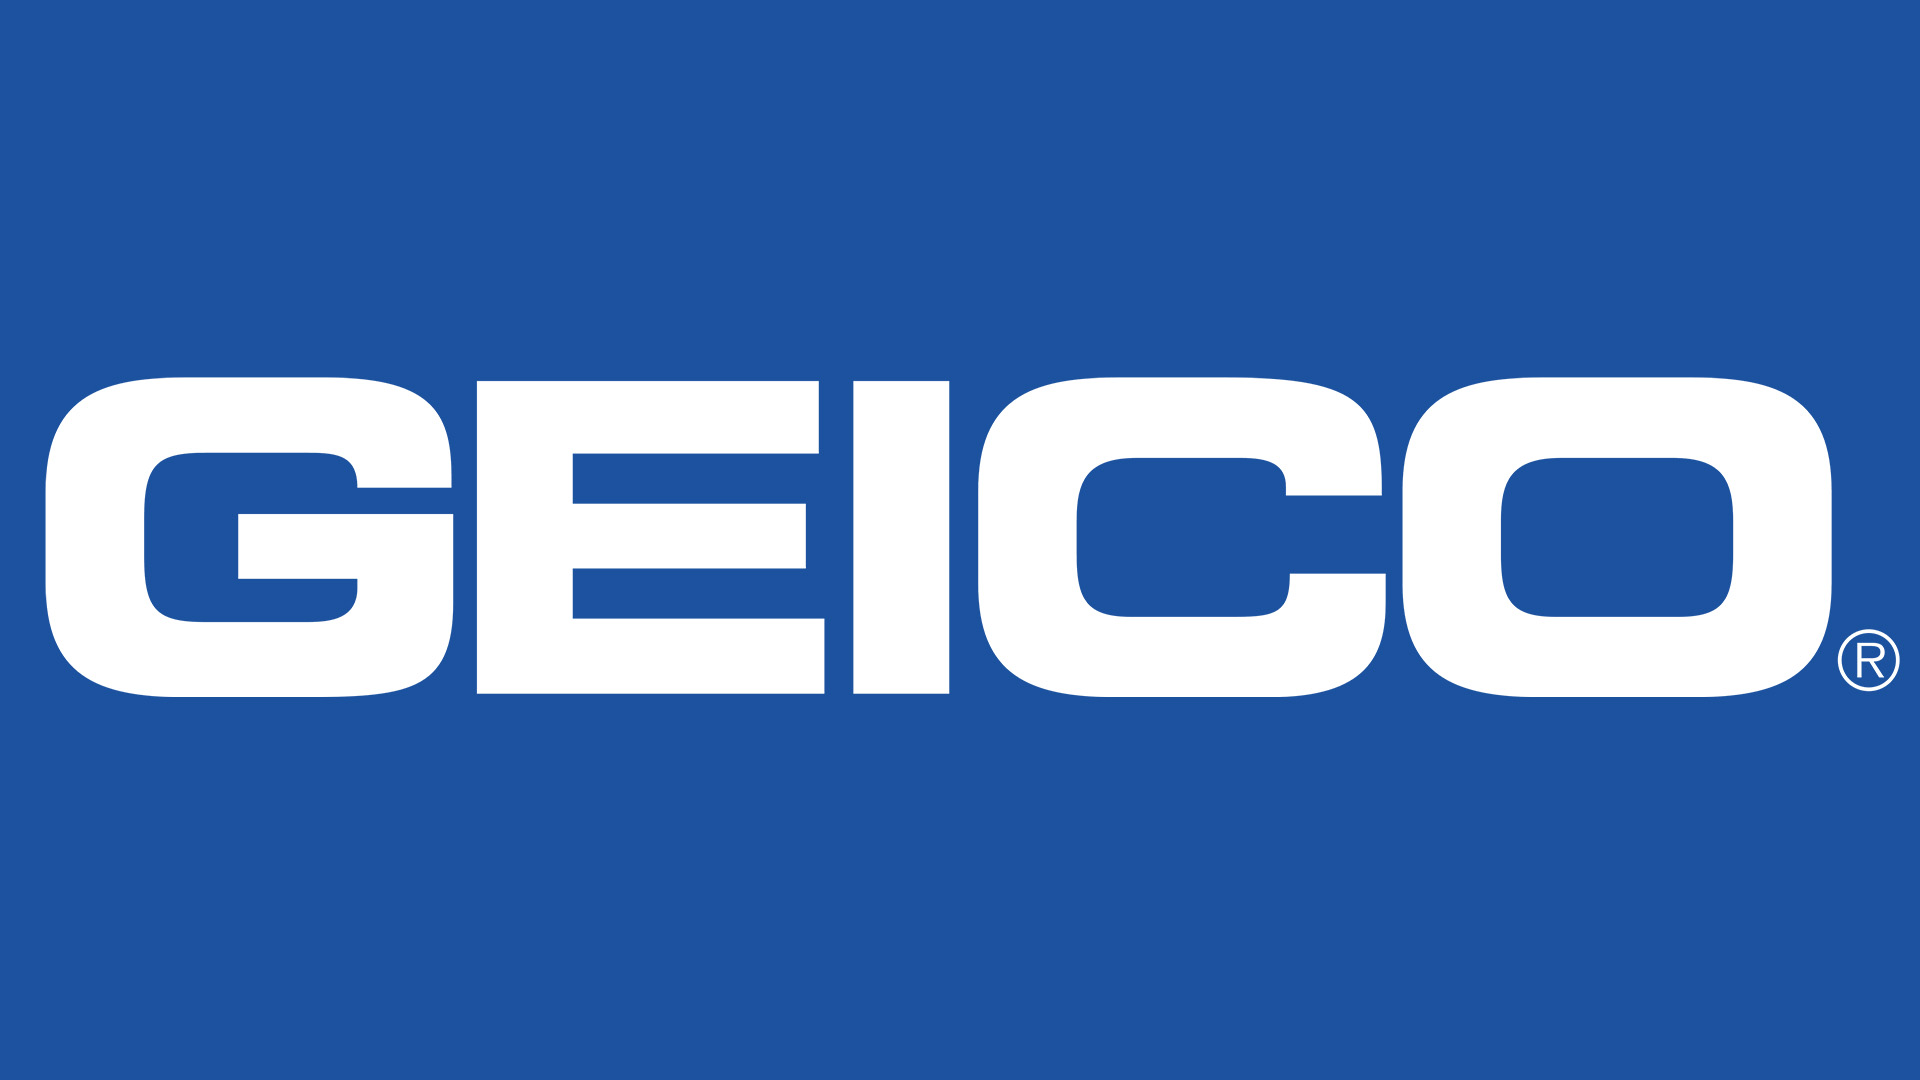 Meaning GEICO logo and symbol.